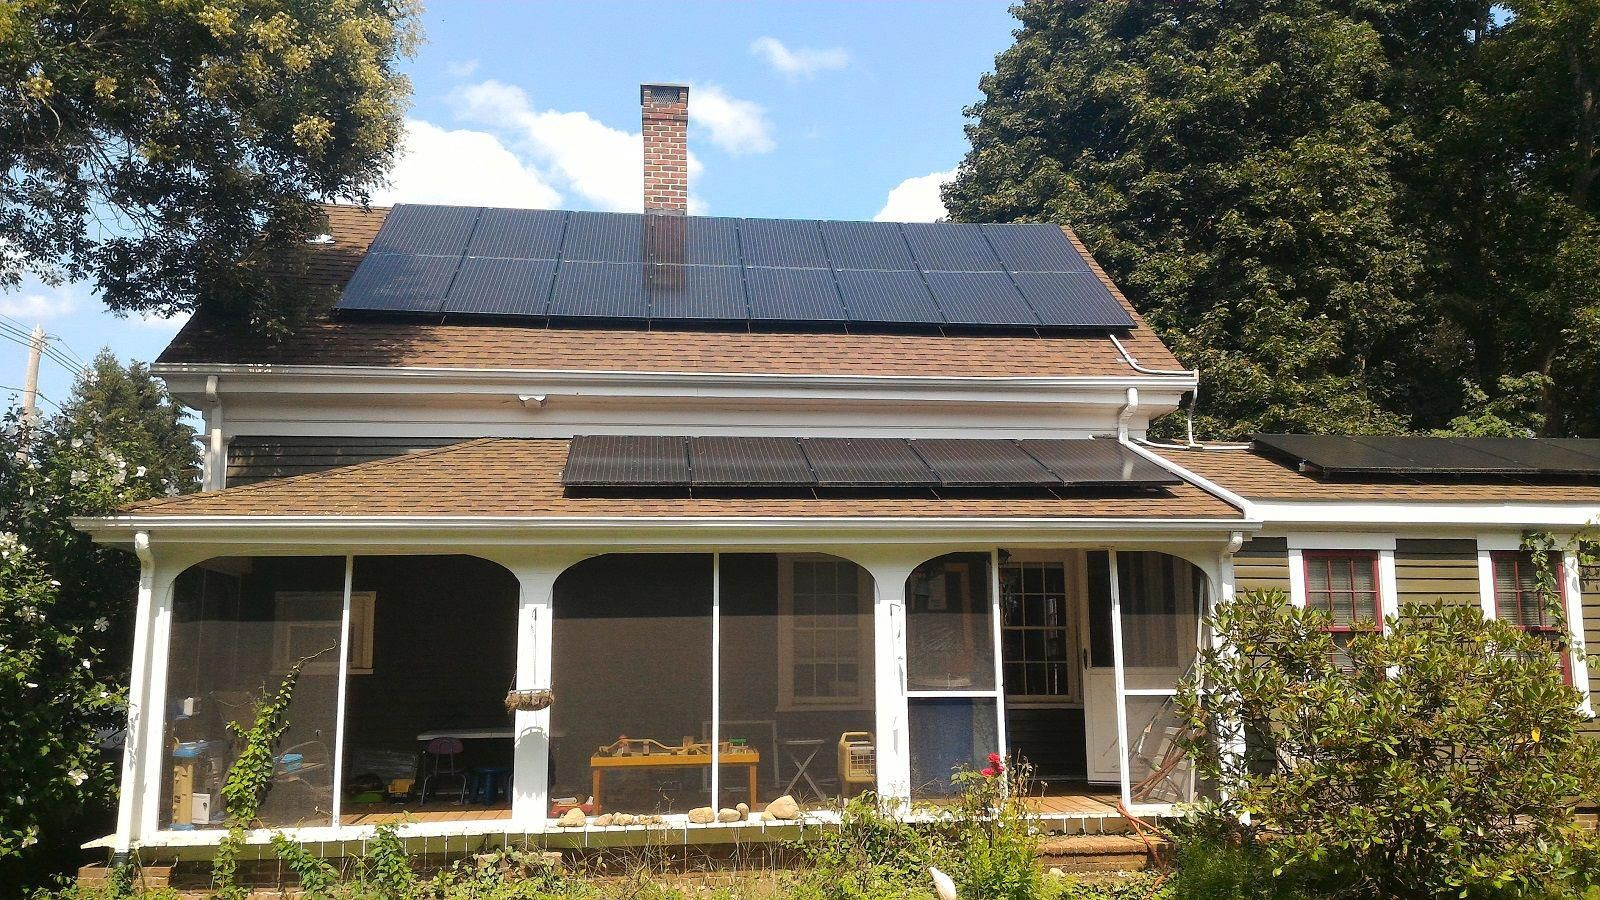 Top 3 Roof Issues to Address Before Installing Solar